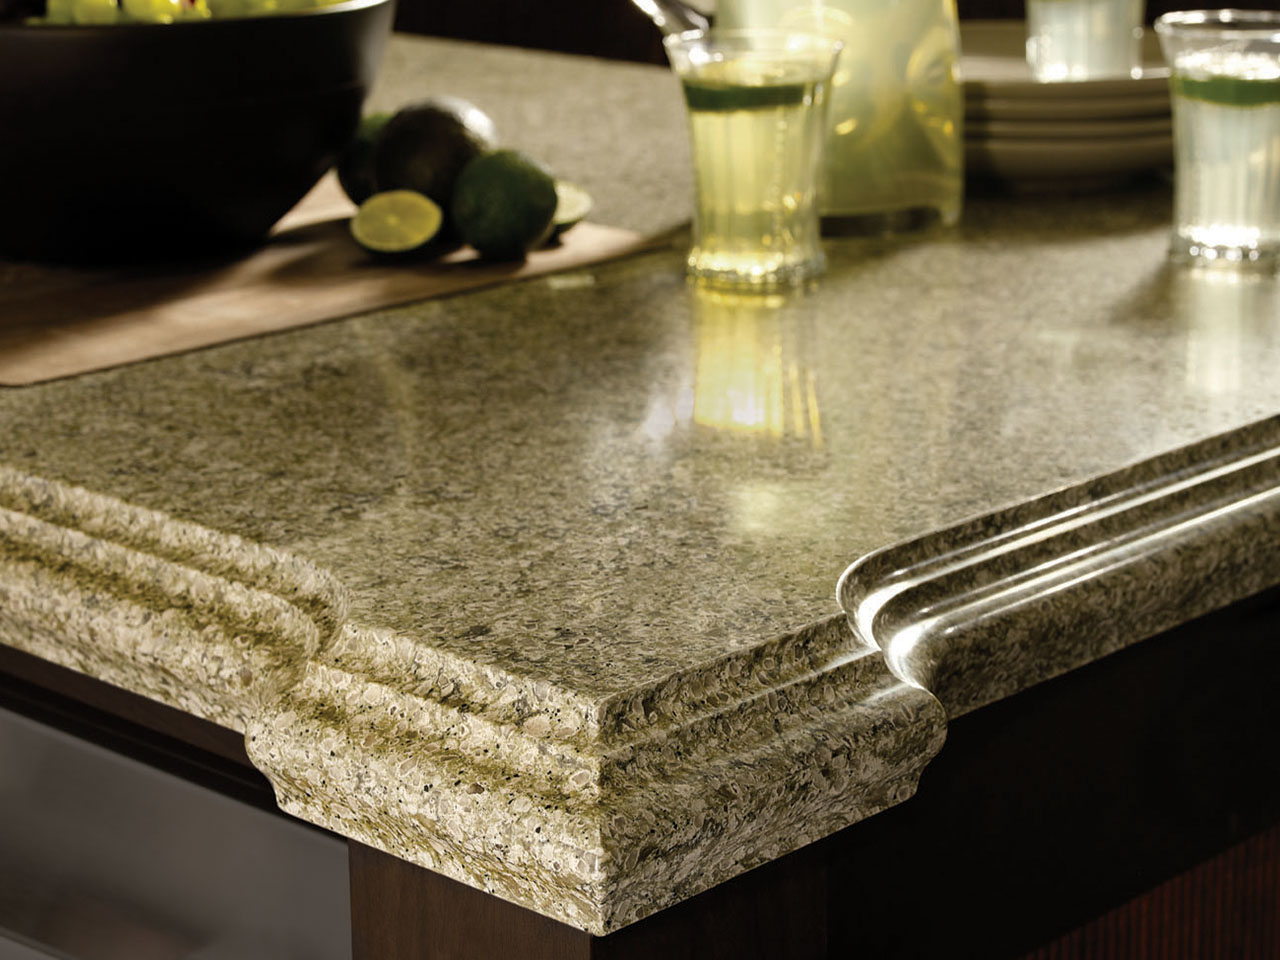 Can You Bleach Granite Countertops Keeping It Clean Quartz And Natural Stone Cleaning Tips